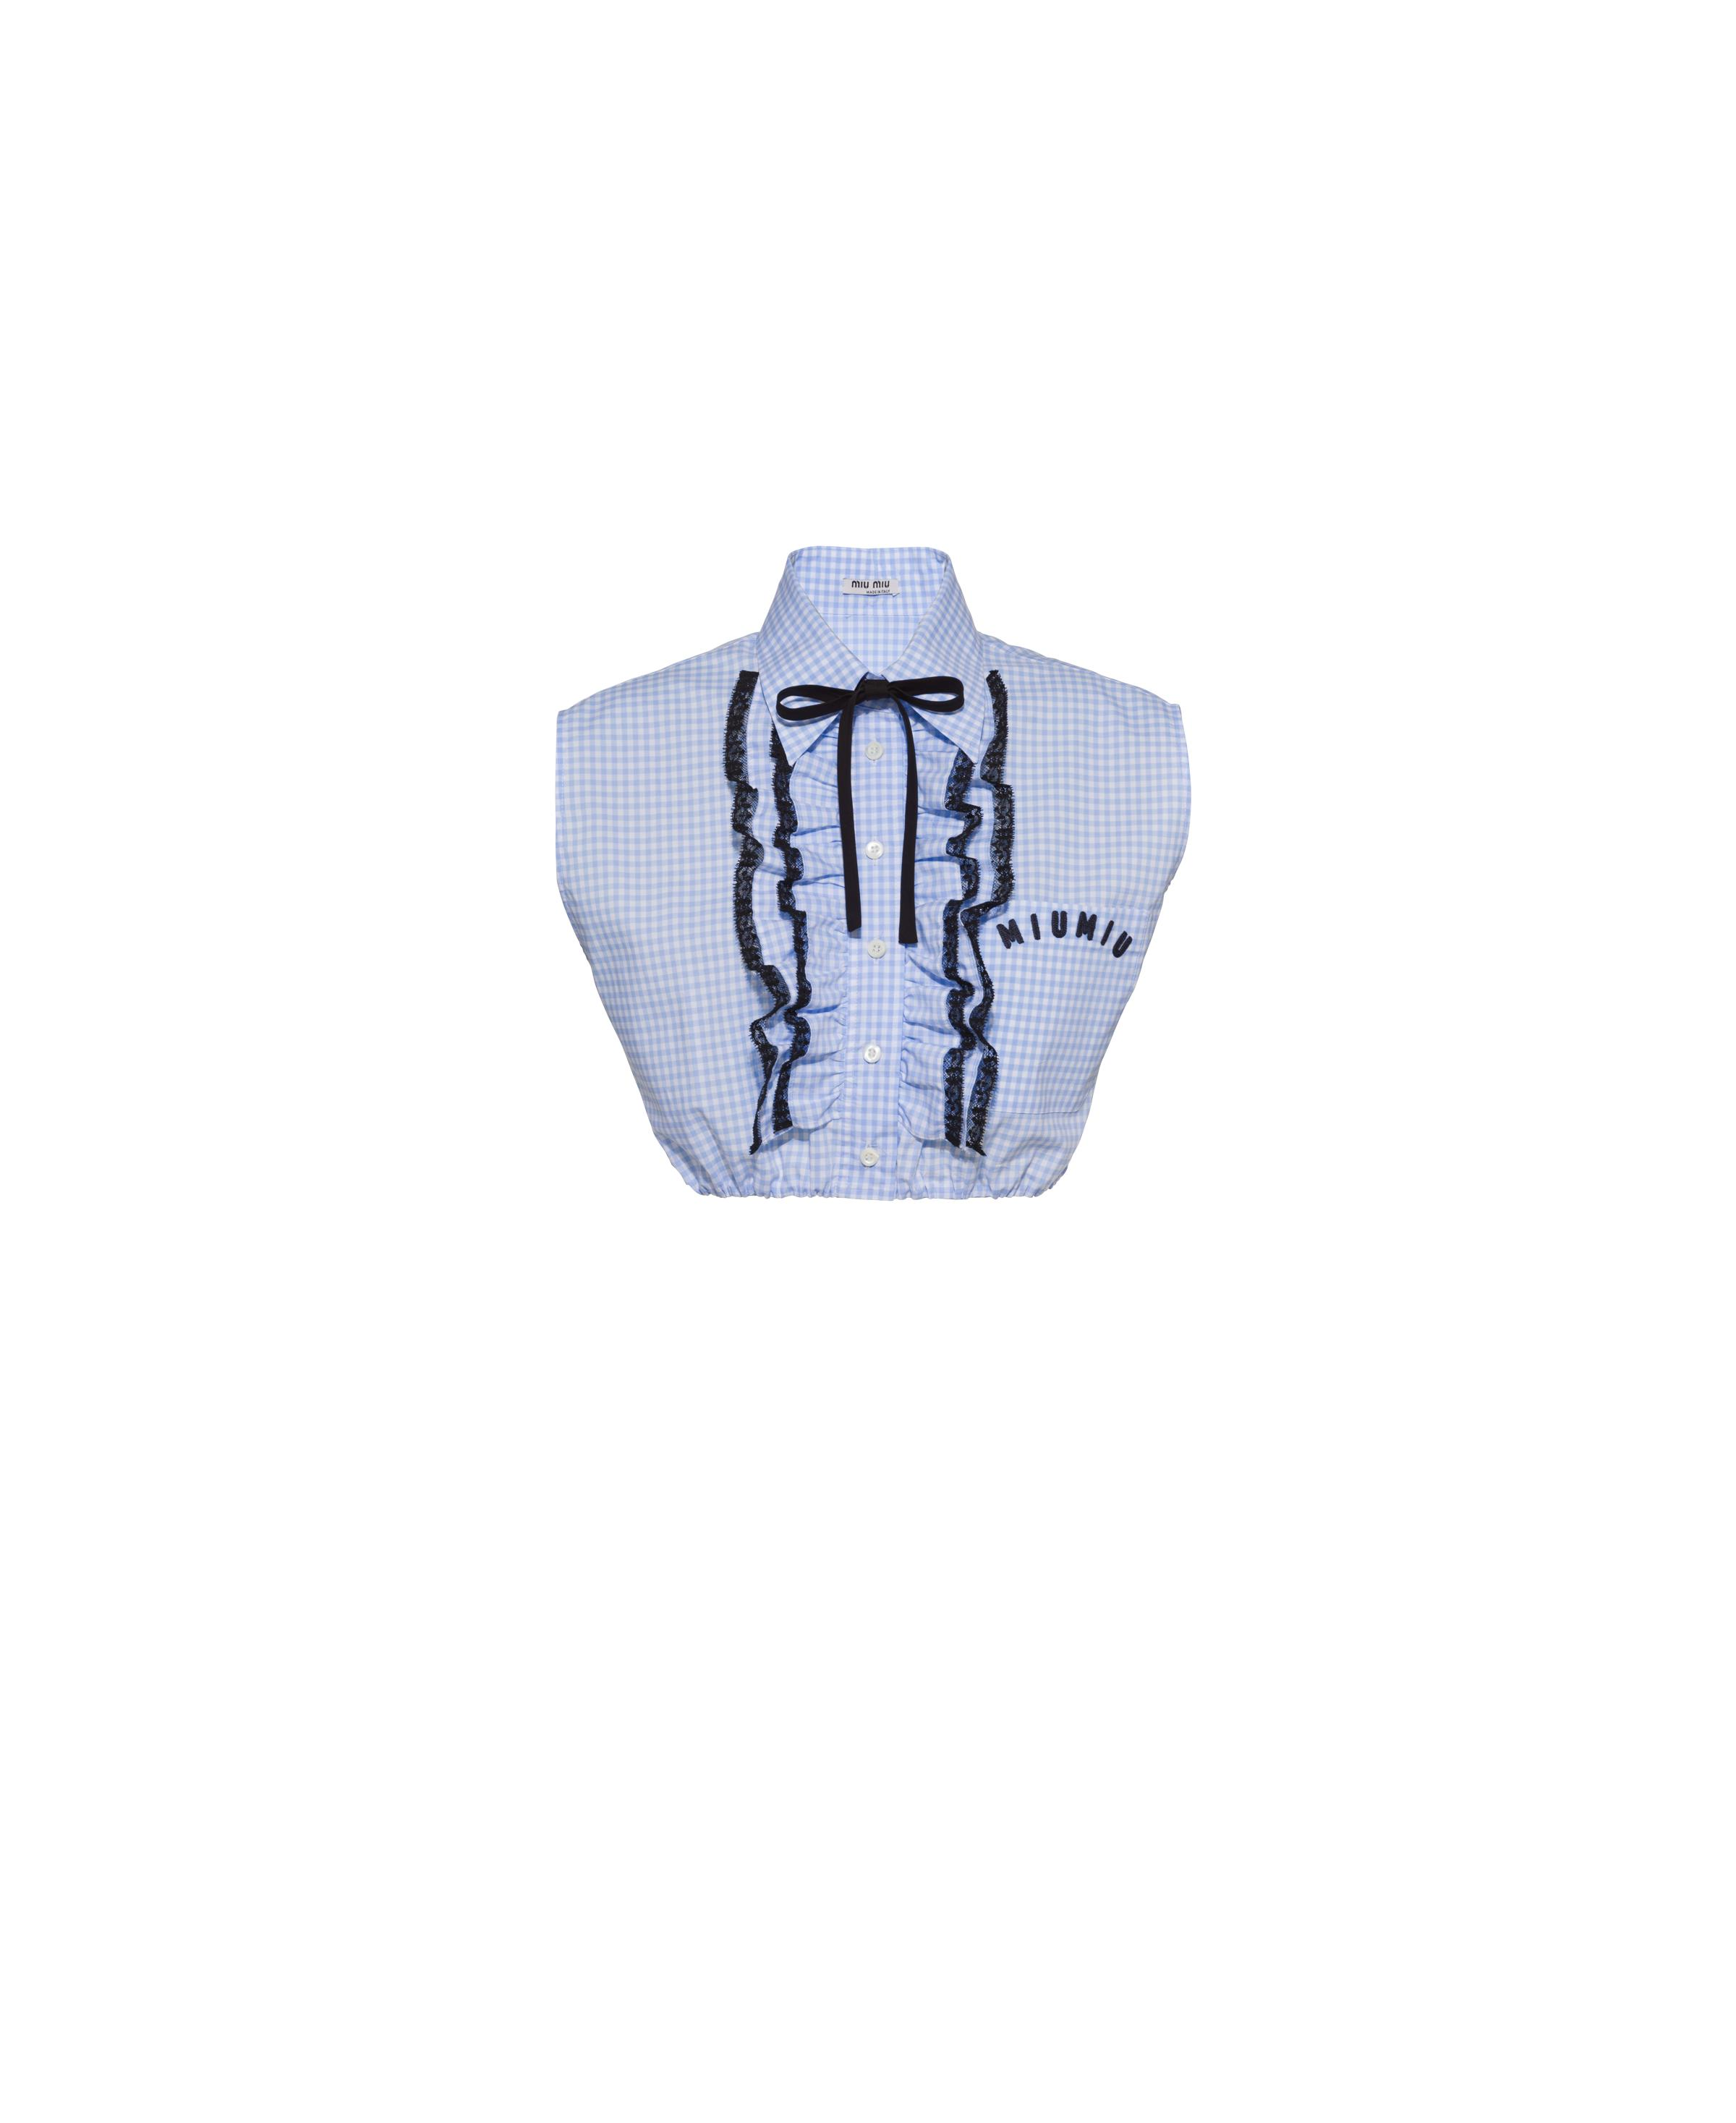 Embroidered Gingham Check Shirt Women Navy